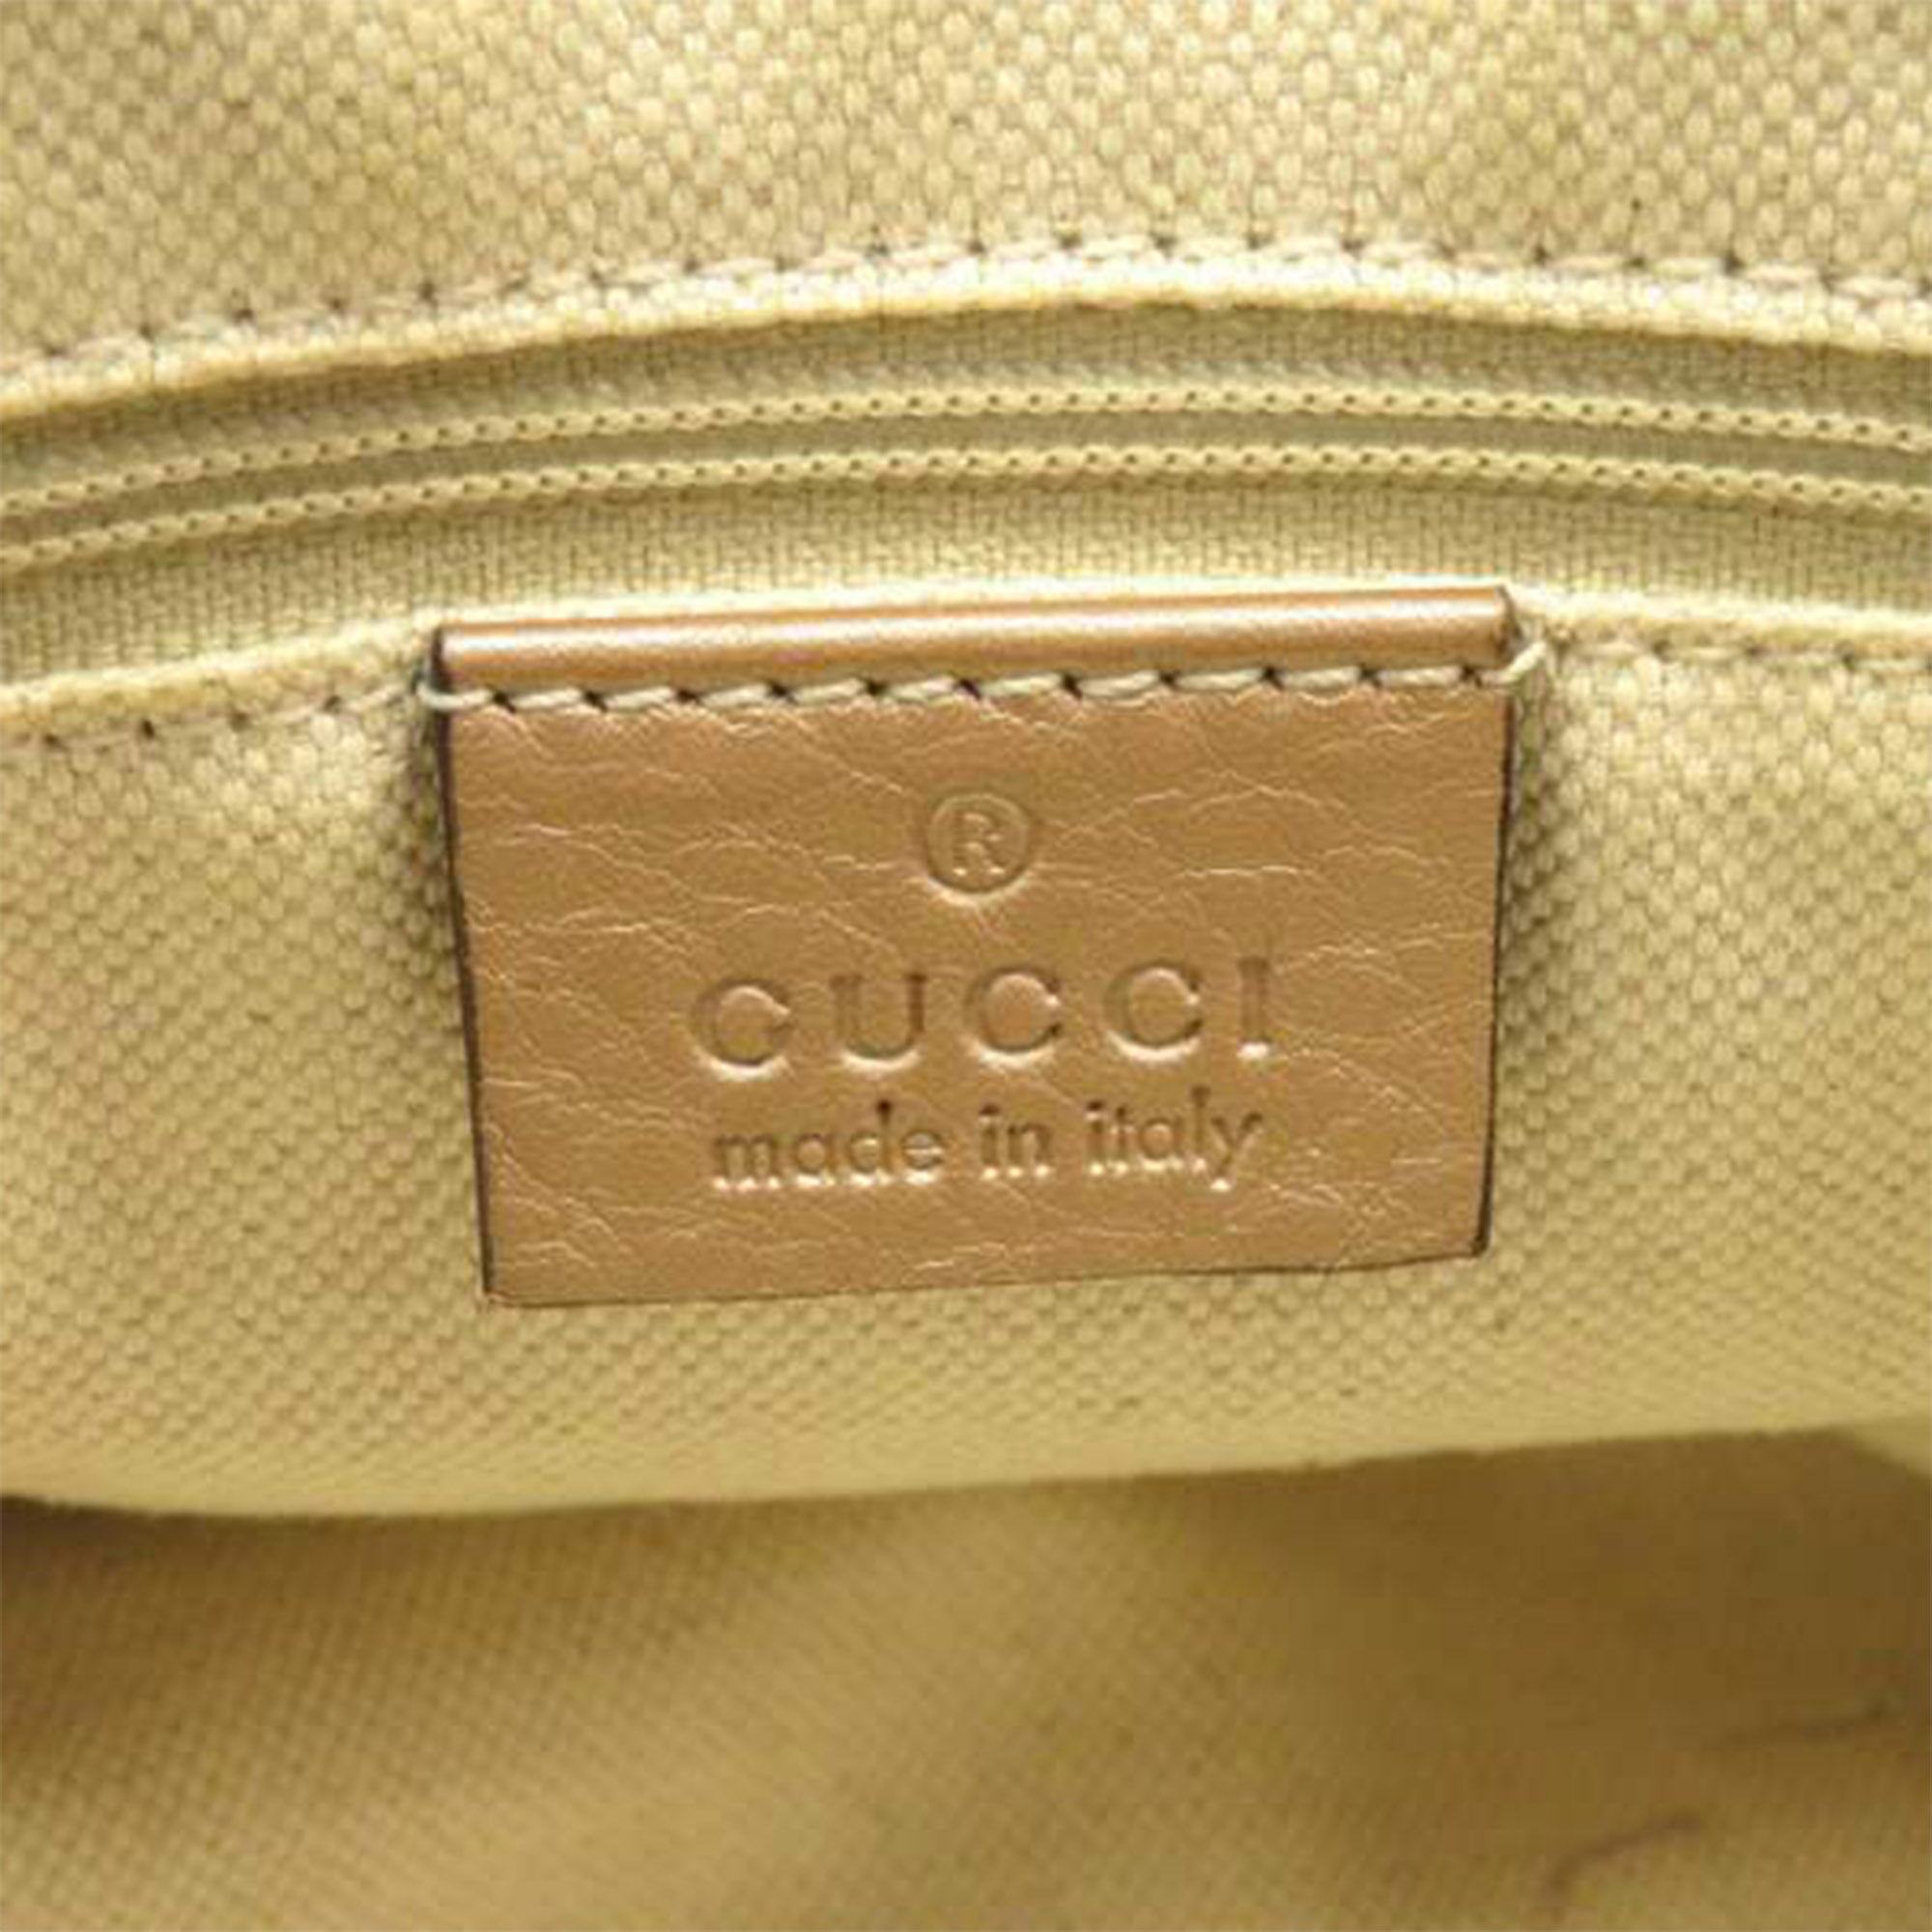 Gucci Brown Sukey Leather Handbag